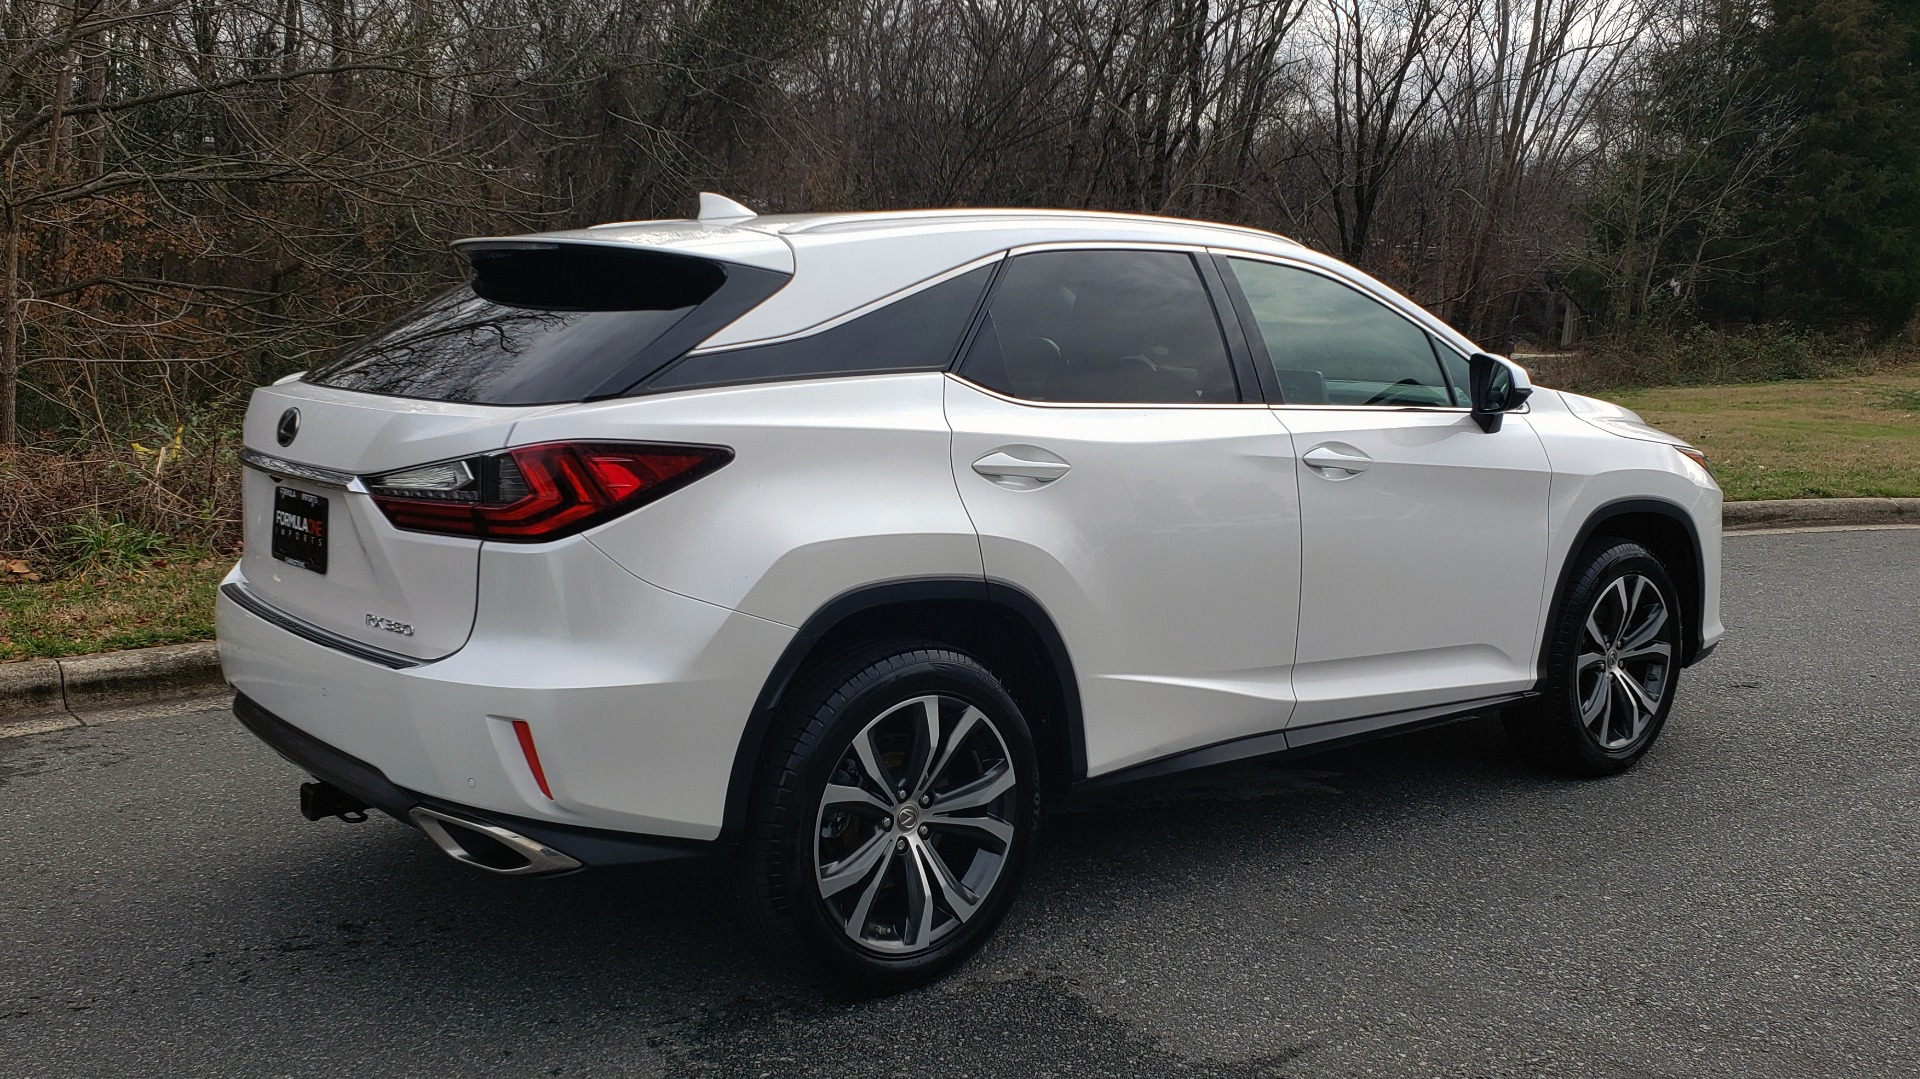 Used 2017 Lexus RX 350 PREMIUM / BSM / SNRF / VENT SEATS / REARVIEW for sale Sold at Formula Imports in Charlotte NC 28227 6